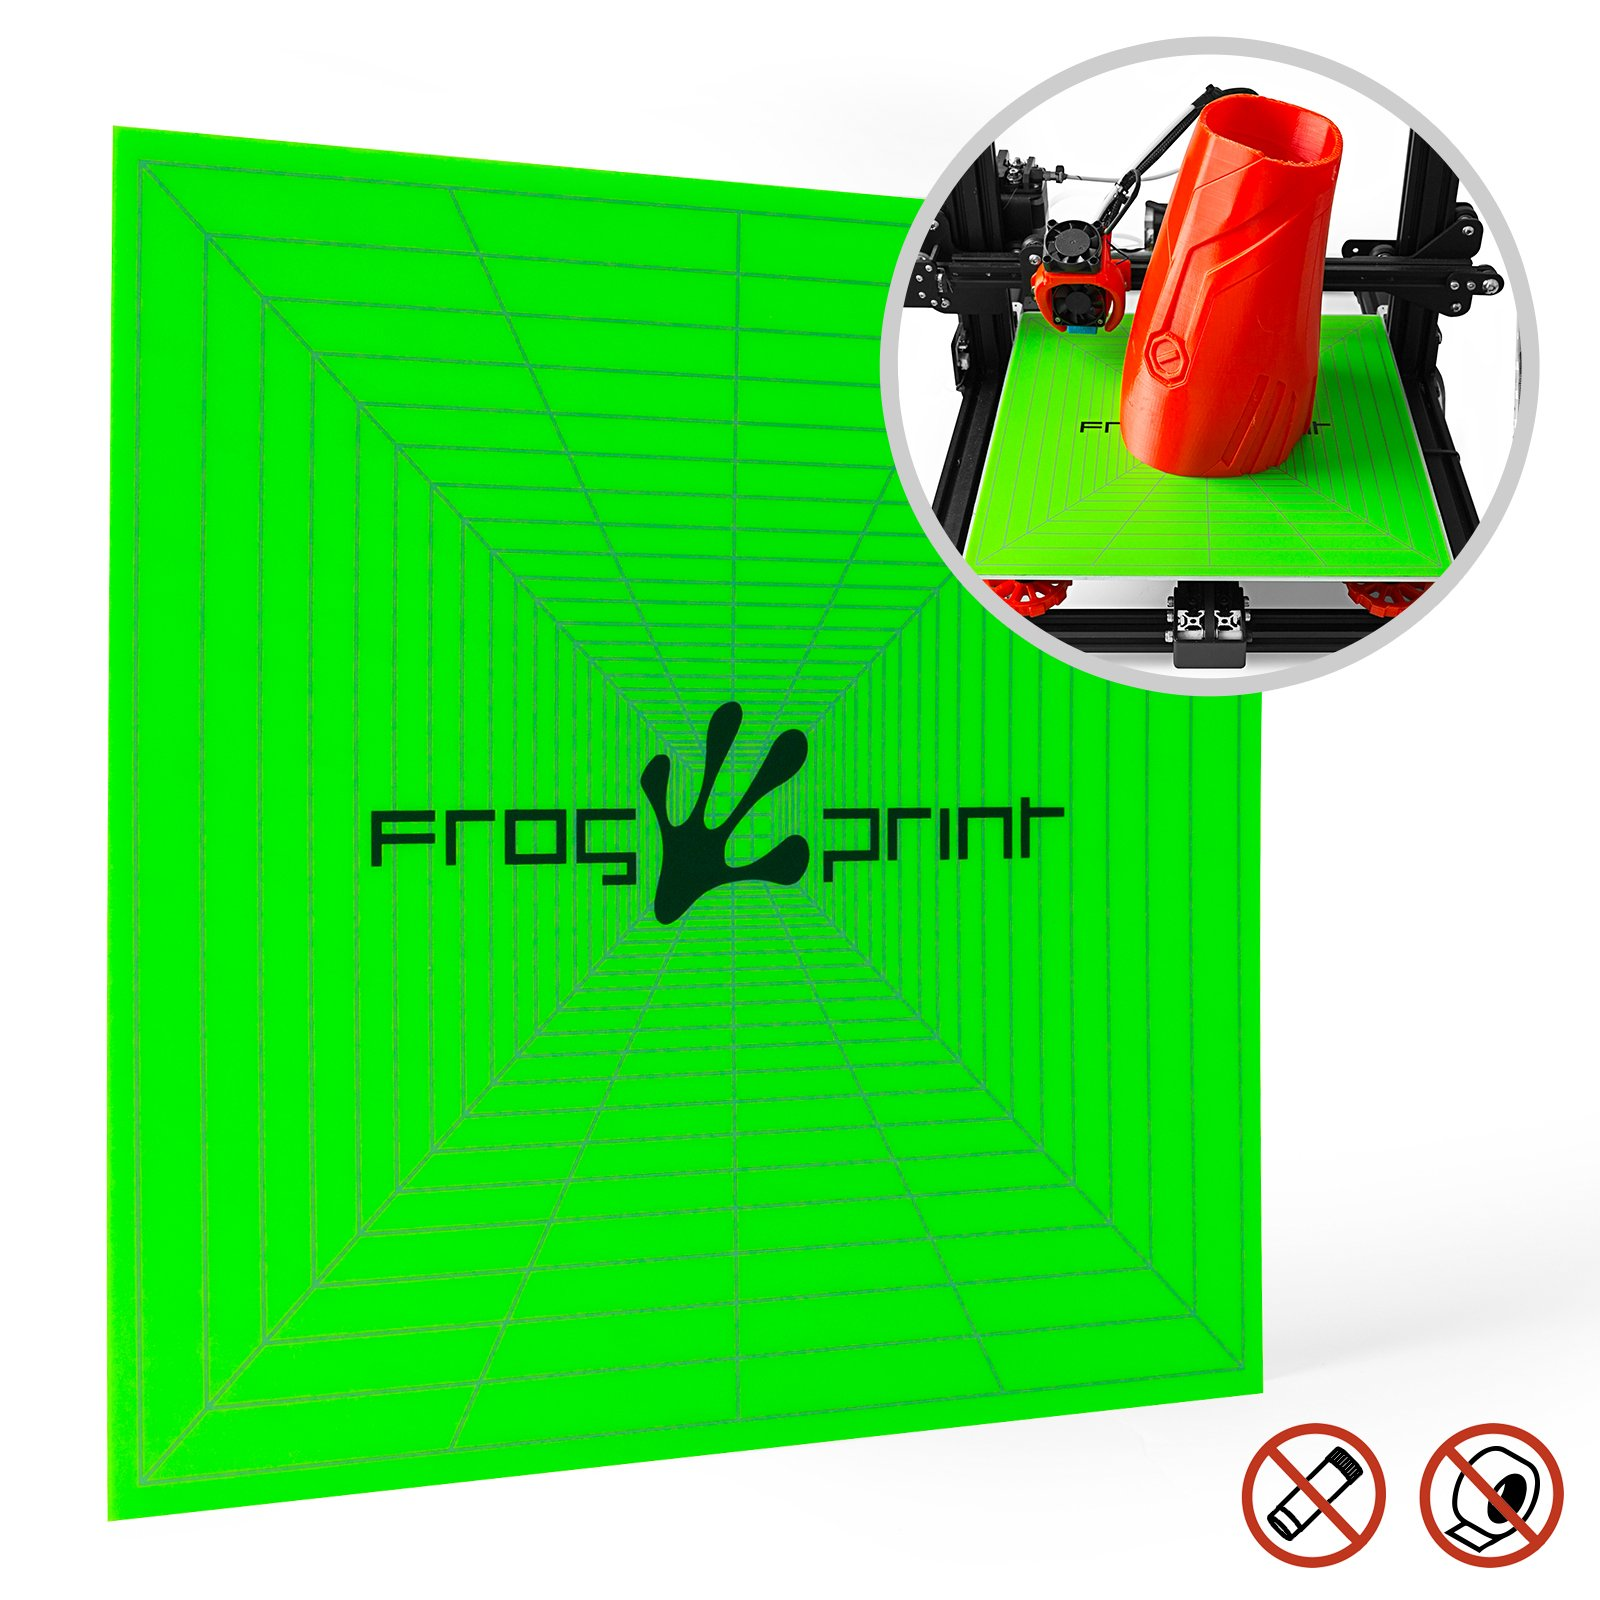 "Frog Print 3D Premium Printing Build Surface for Perfect Prints / 12"" x 12"" (310mm X 310mm) with 3M Adhesive Backing. Can be Cut for All 3D Printers Including: Makerbot/Lulzbot / CR-10 / CR-10S by Frog Print 3D"